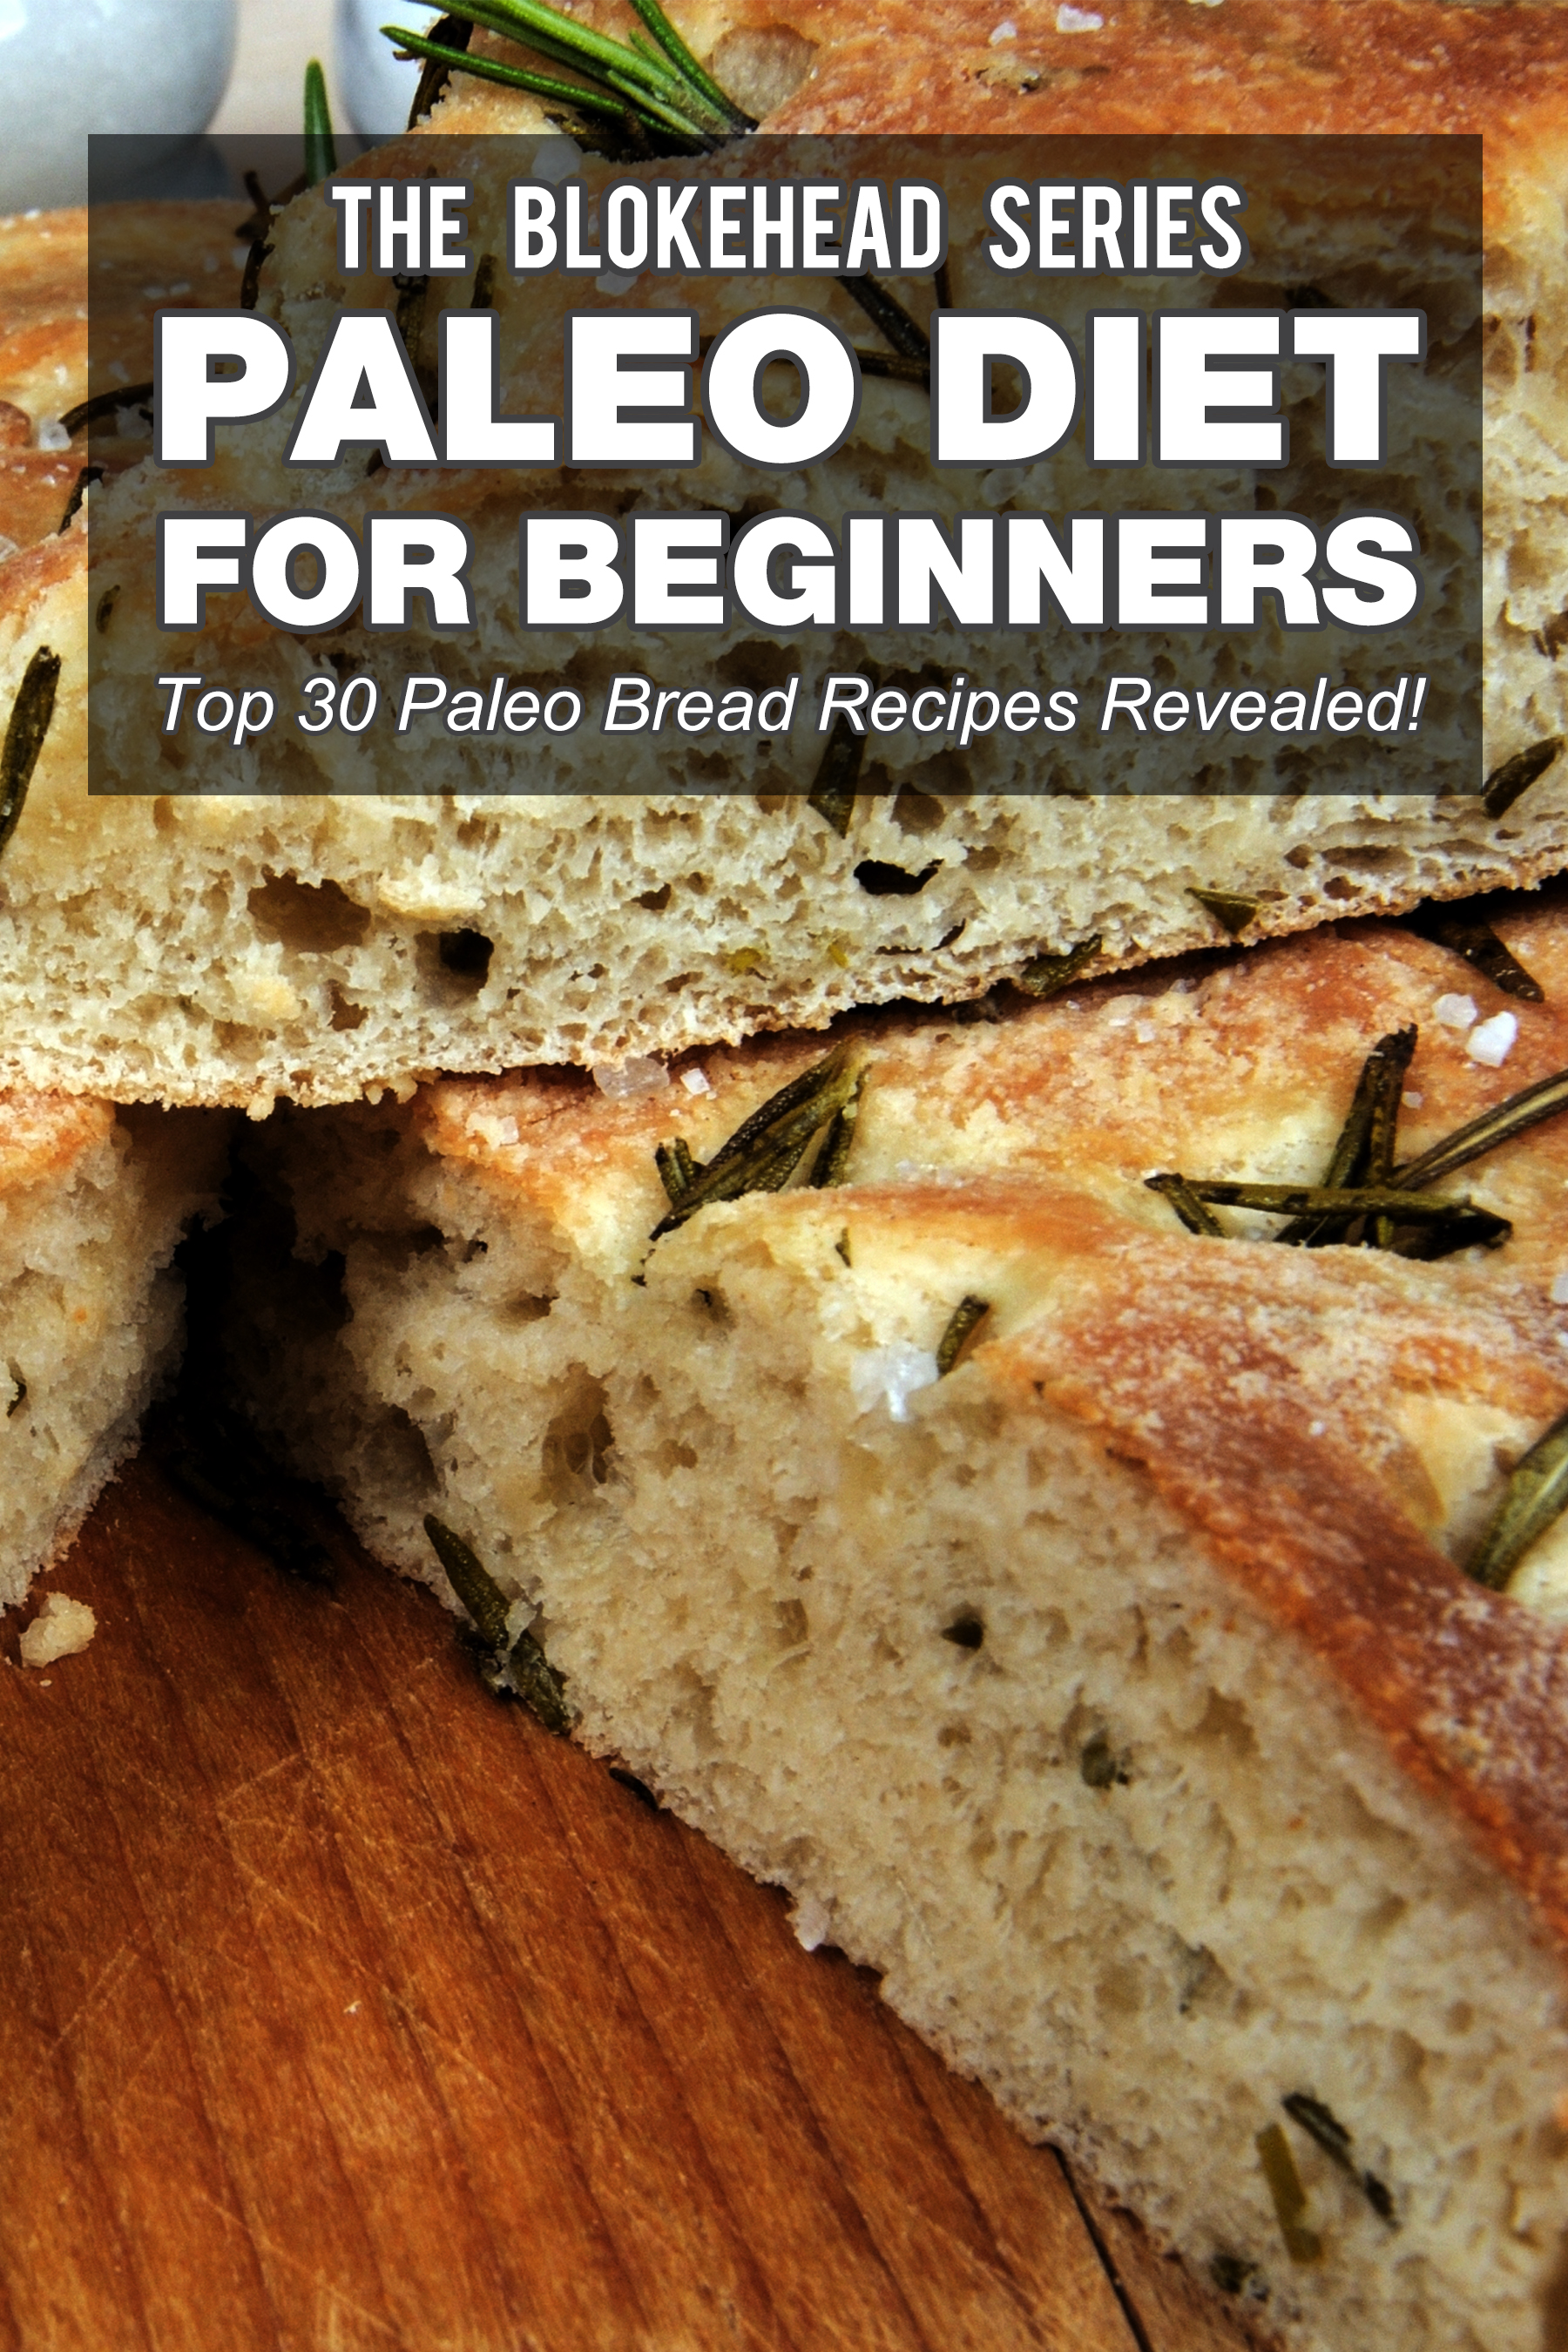 Paleo diet for beginners : top 30 paleo bread recipes revealed!